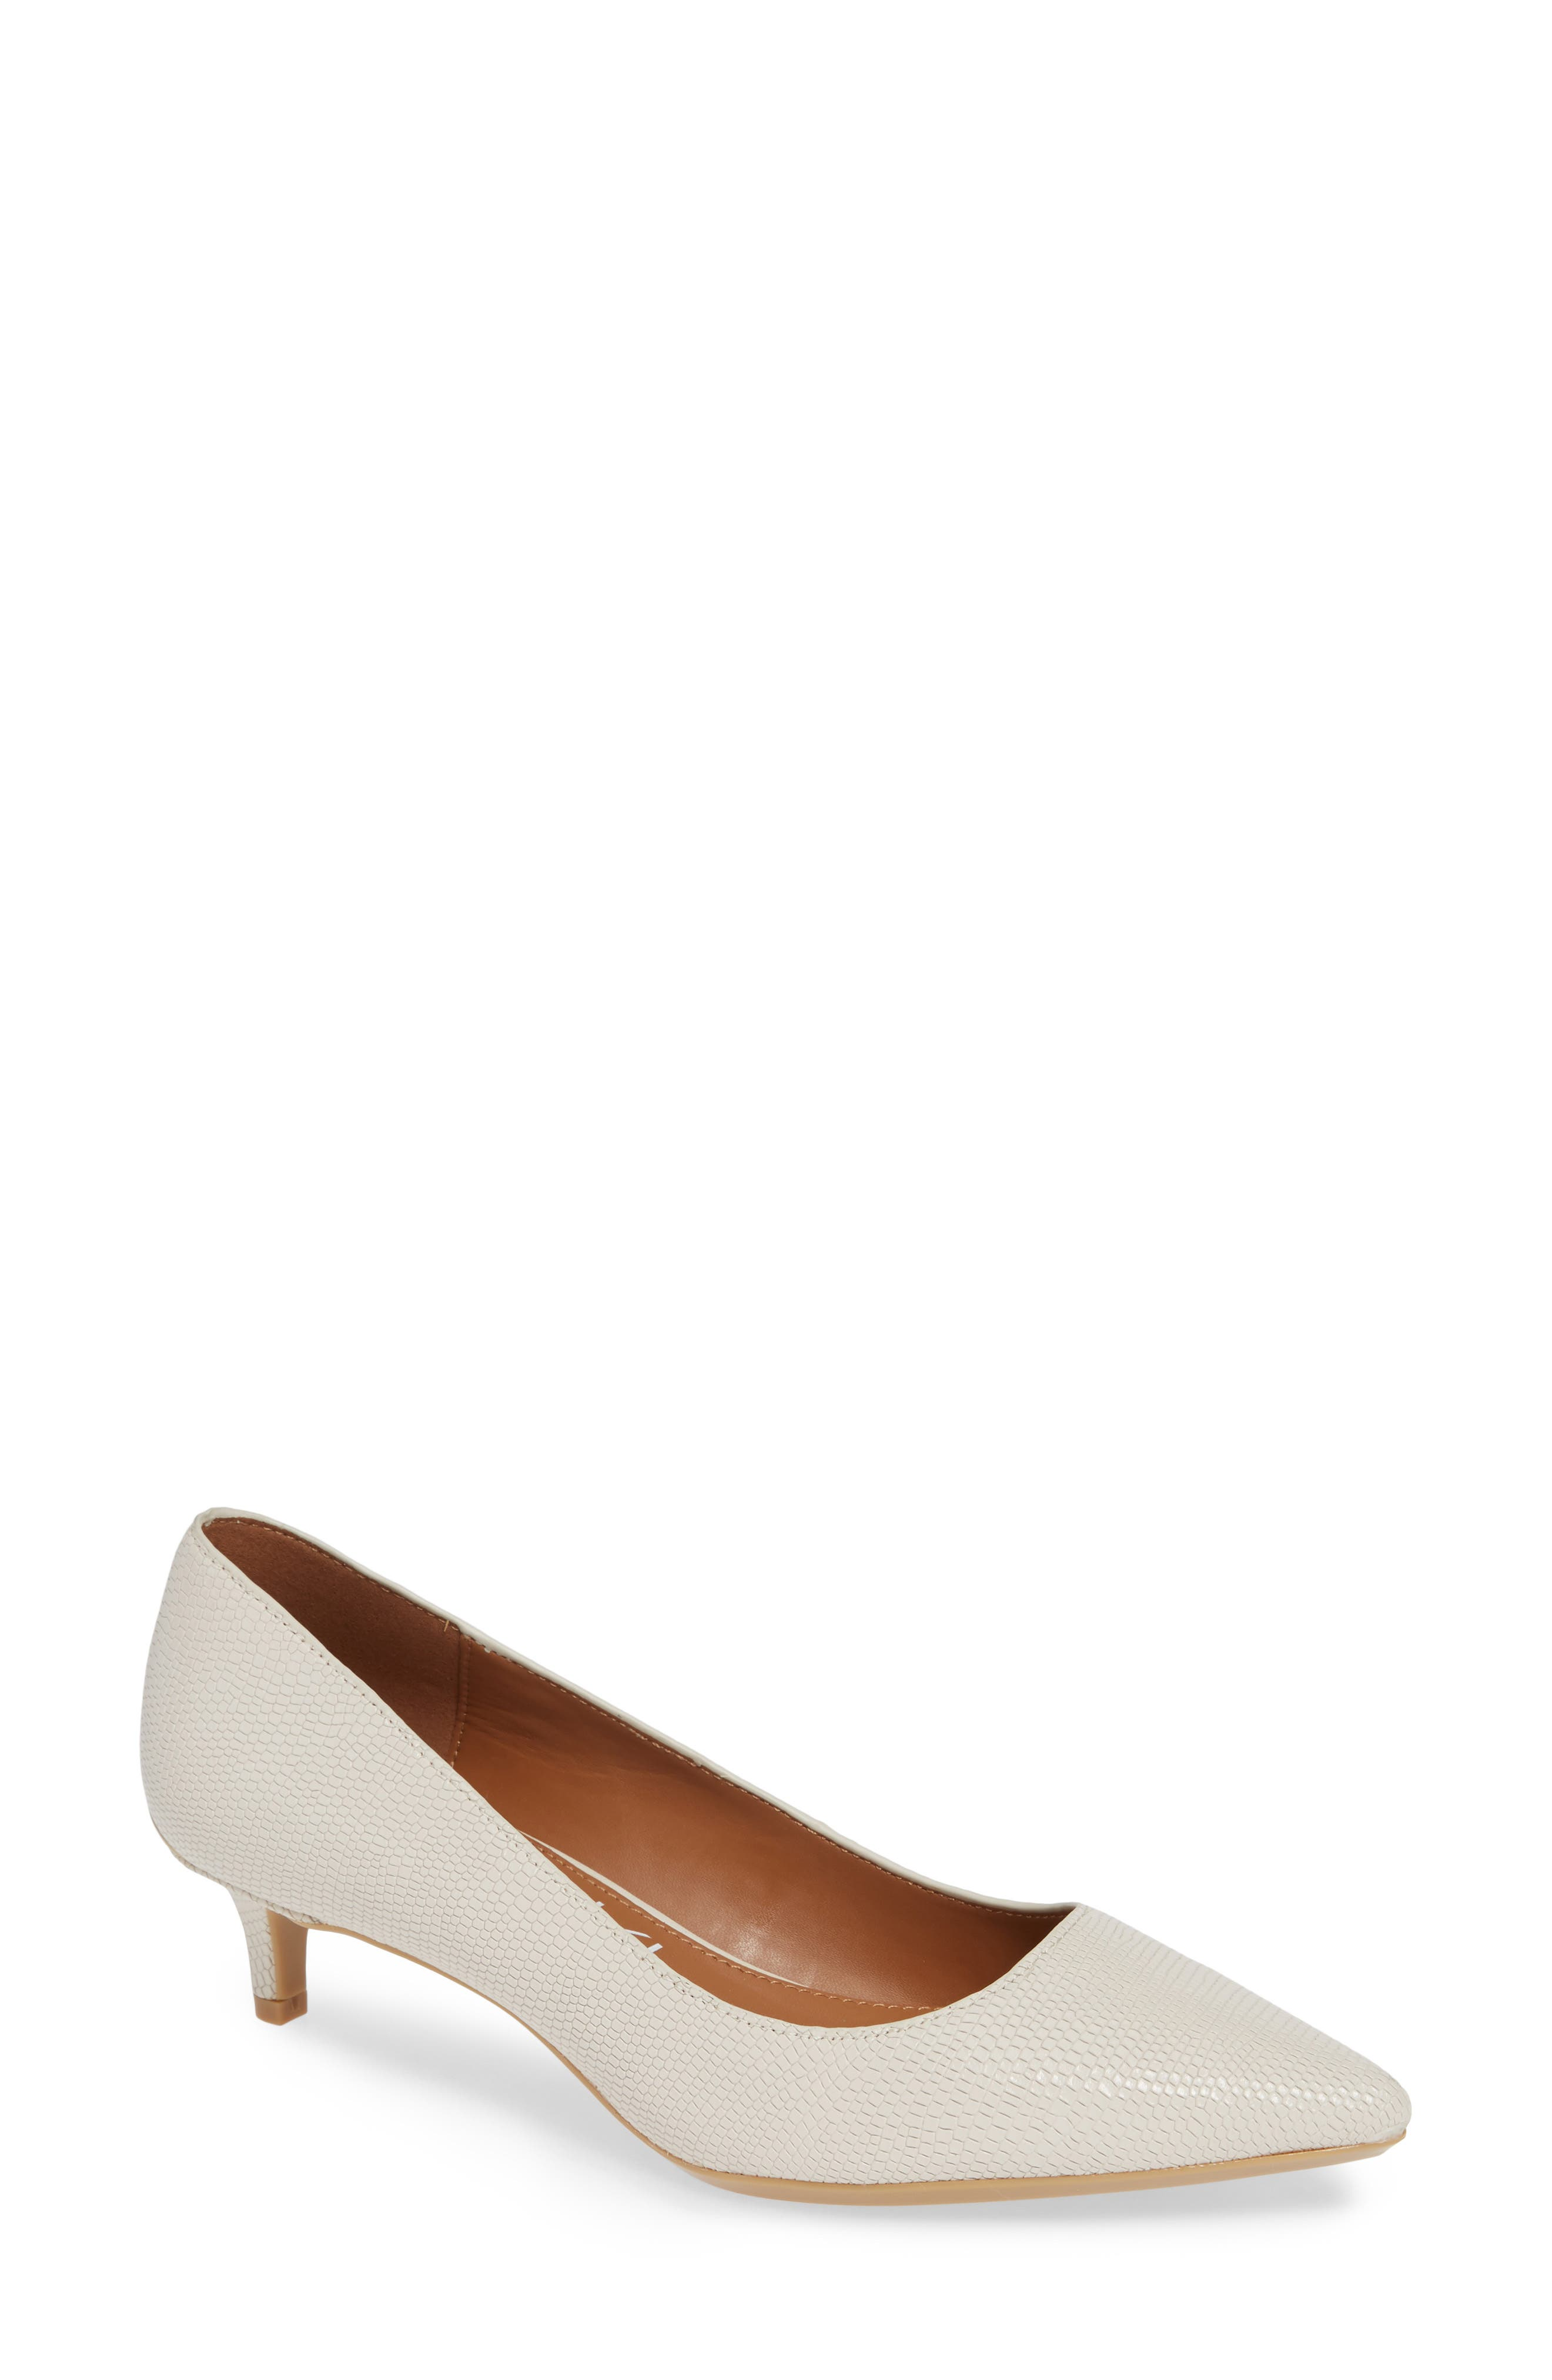 Gabrianna Pump,                             Main thumbnail 1, color,                             SOFT WHITE LEATHER